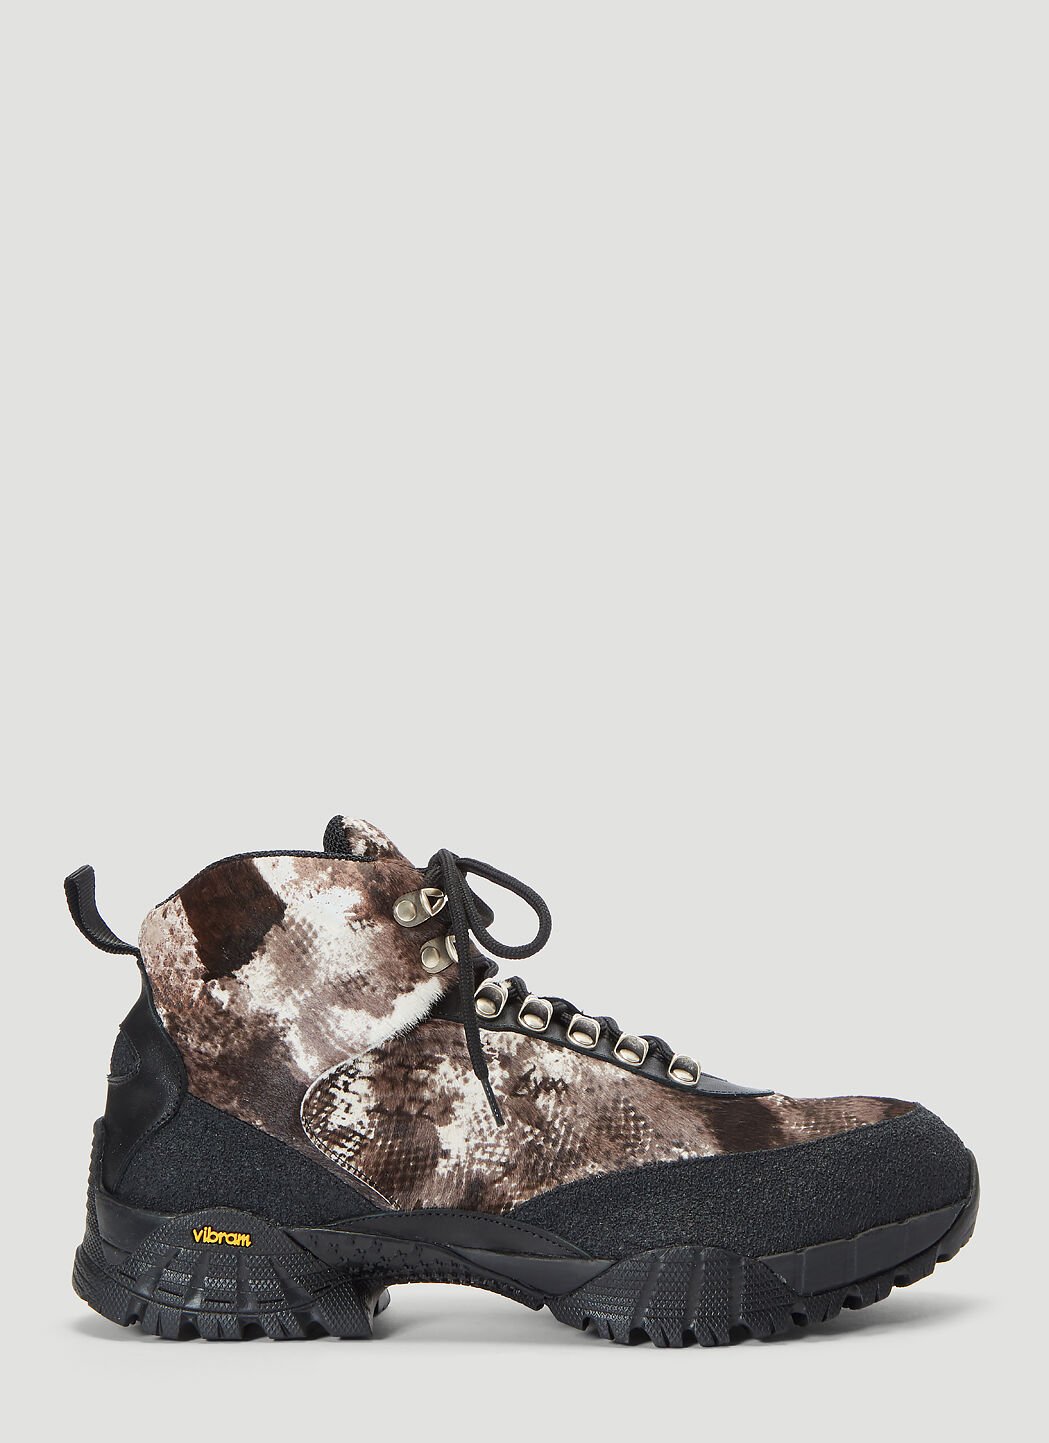 1017 ALYX 9SM Textured Hiking Boots in Brown | LN CC